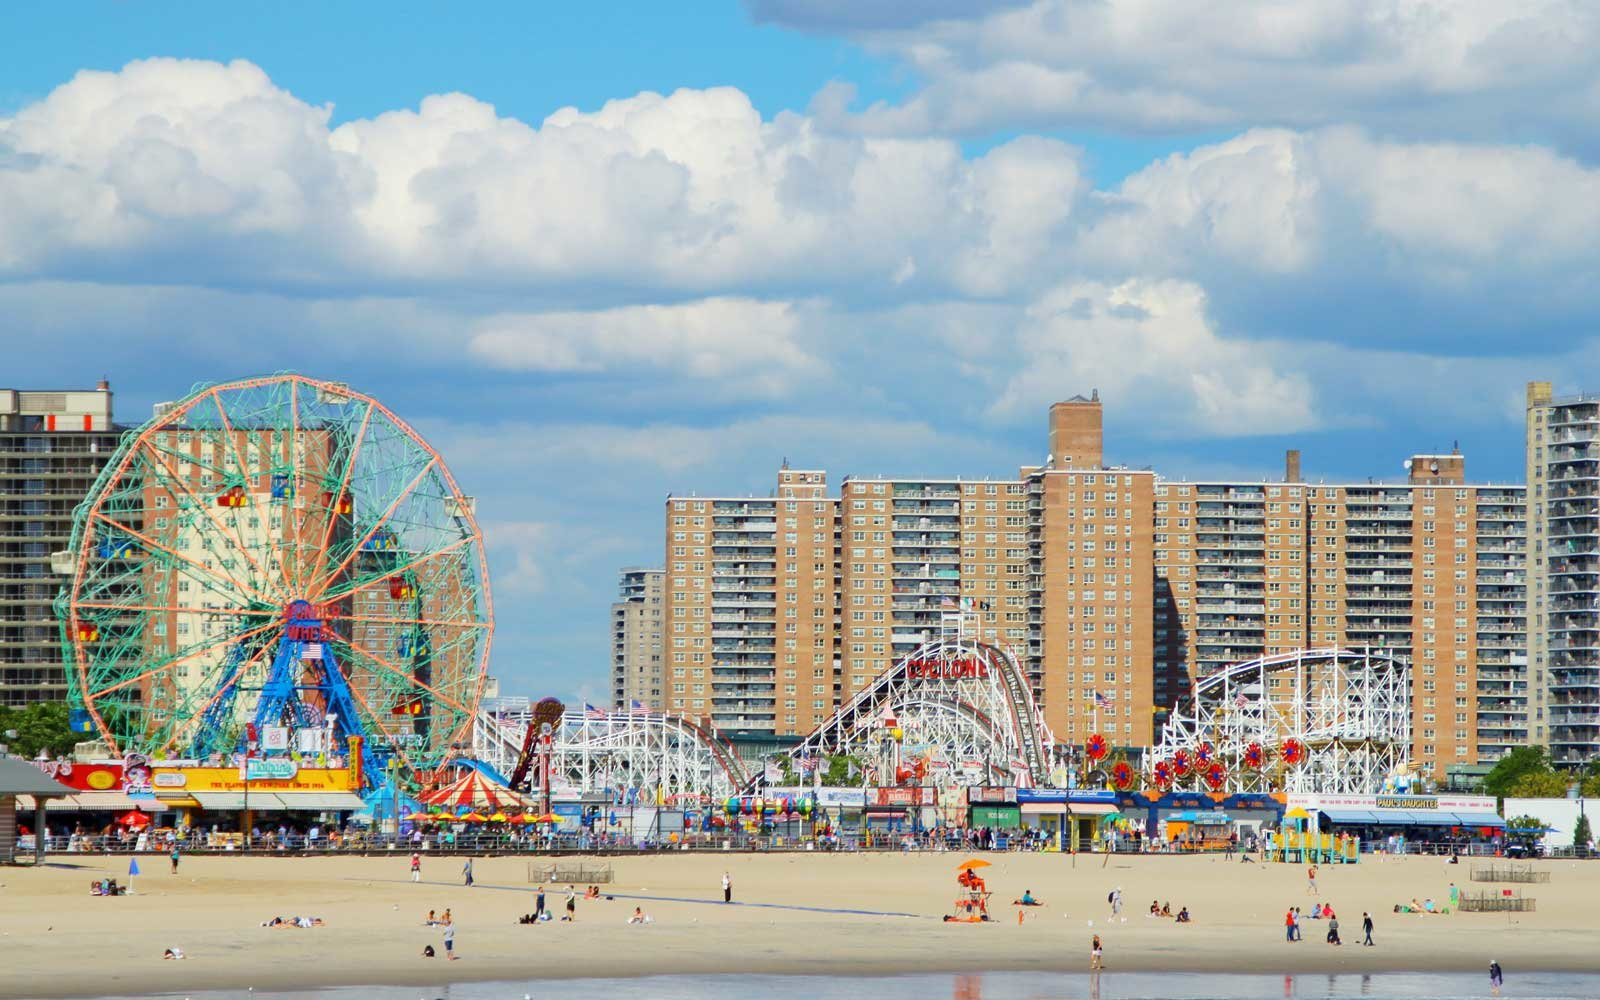 View of Coney Island Beach and Riegelmann Boardwalk in summer day. Photo shows also Wonder Wheel and Cyclone Rollercoaster in the Lunapark.